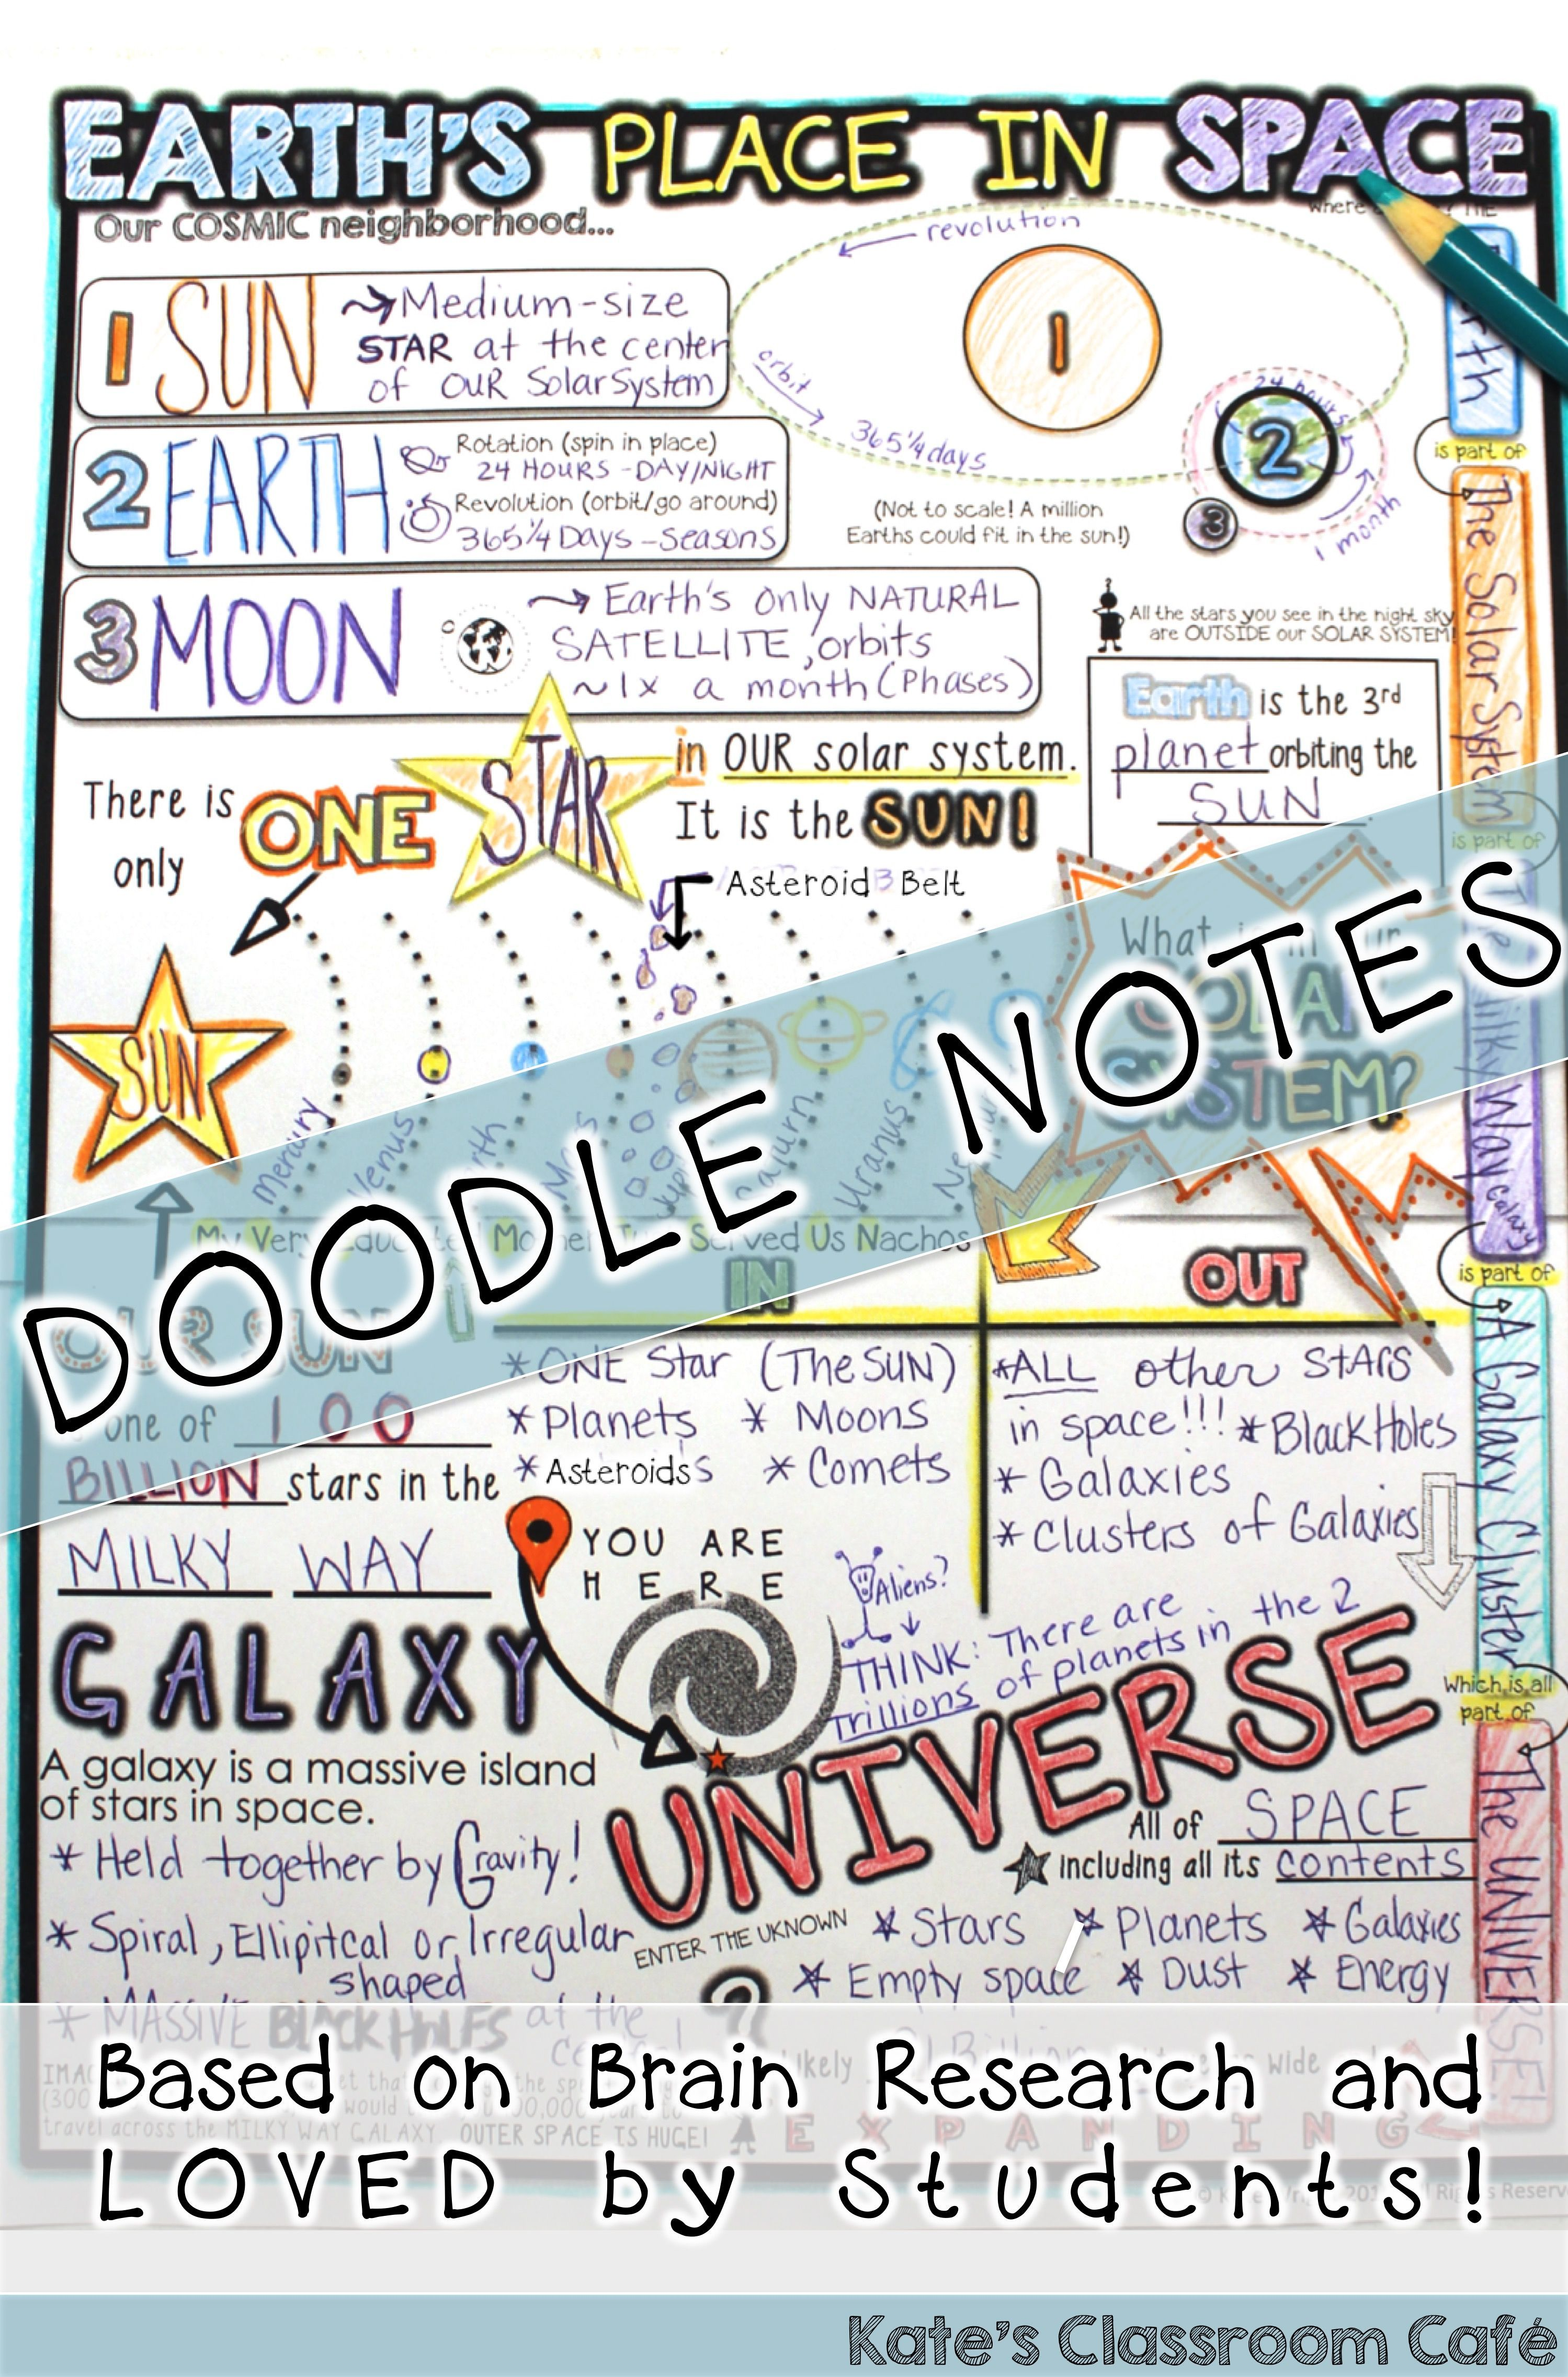 in Space Intro to Astronomy Doodle Notes Introduce or review basic astronomy with doodle notes.  Emphasize our place in space and discuss